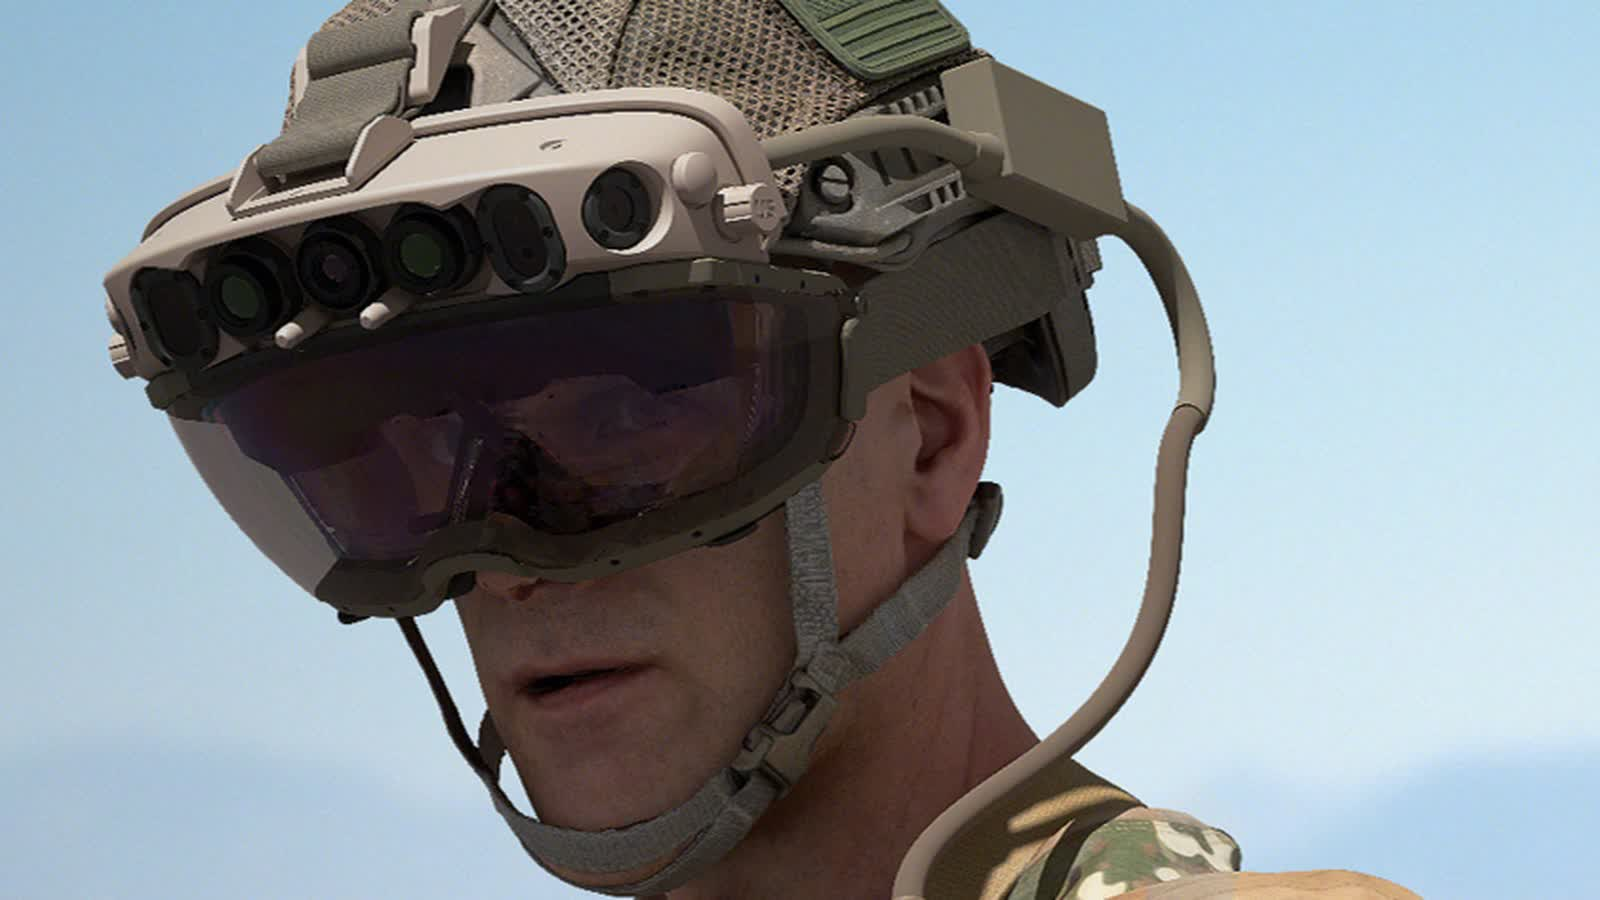 Microsoft wins $21.8 billion contract to build HoloLens-based AR helmets for US Army